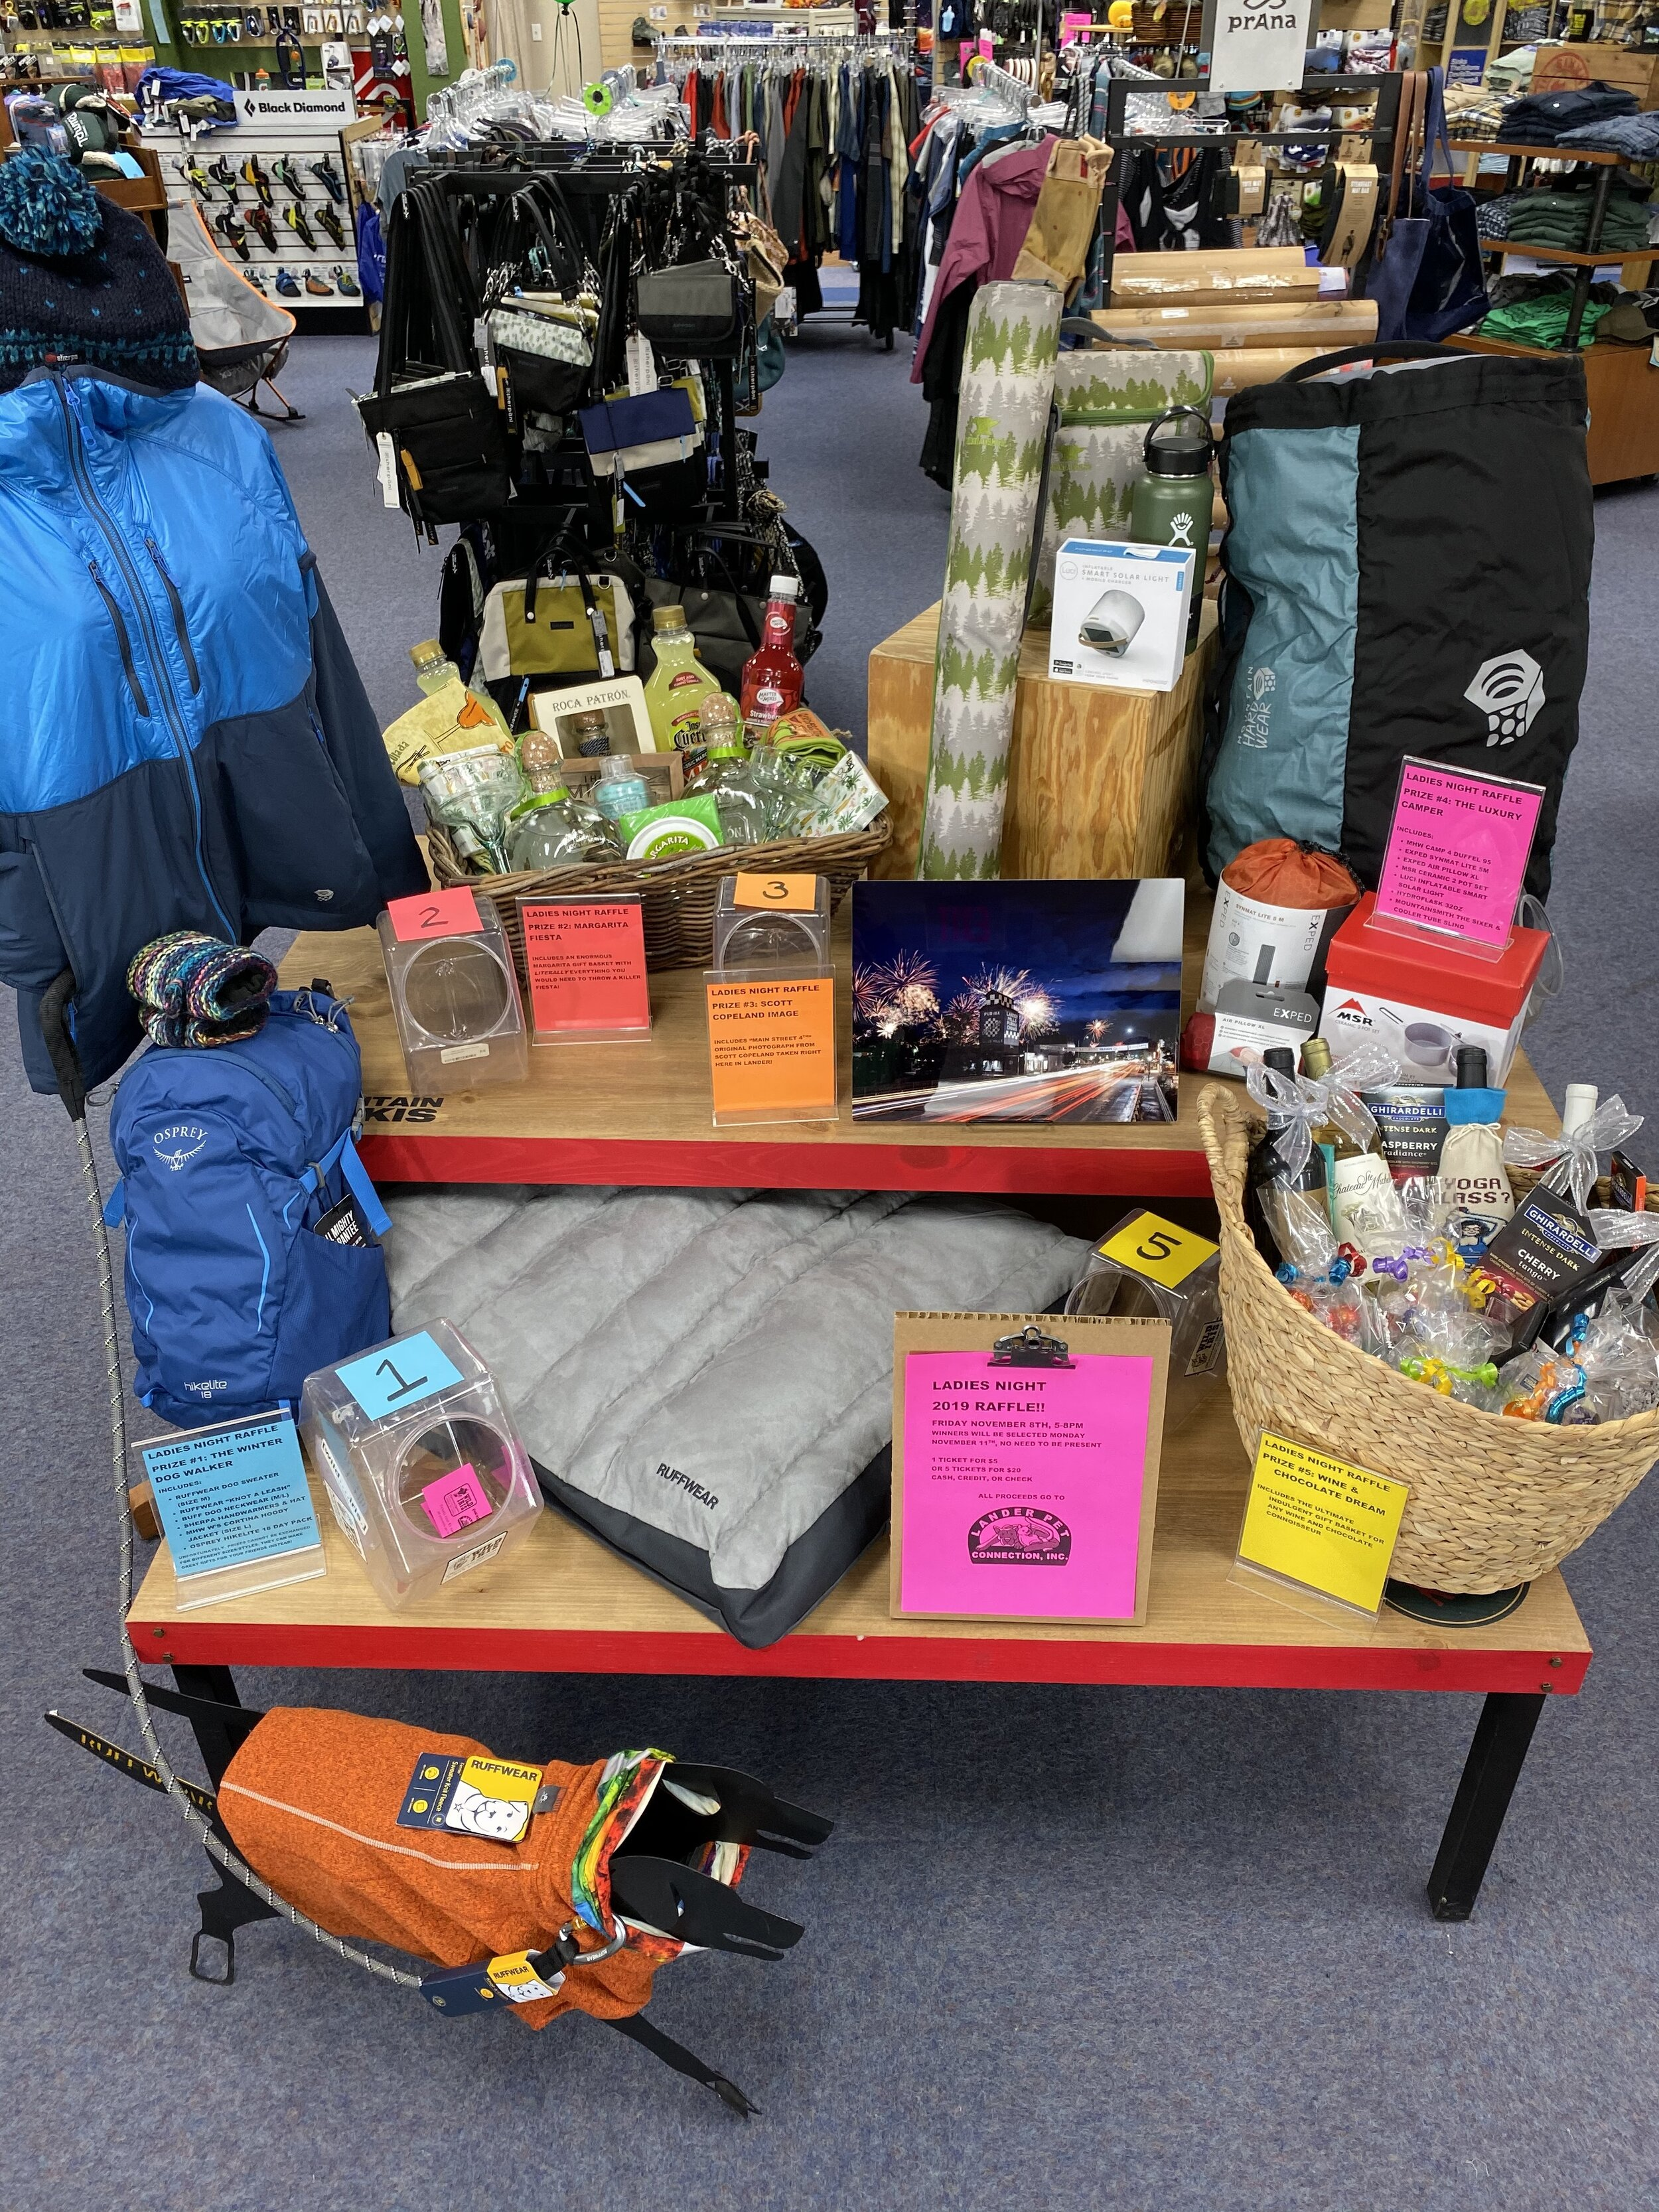 Ladies Night 2019 Prize Display - For a chance to win, buy raffle tickets here online, or in person at Wild Iris Mountain Sports. You do not need to be present to win, but you would miss out on the fun and games happening during Ladies Night on Nov. 8th from 5 - 8 p.m.